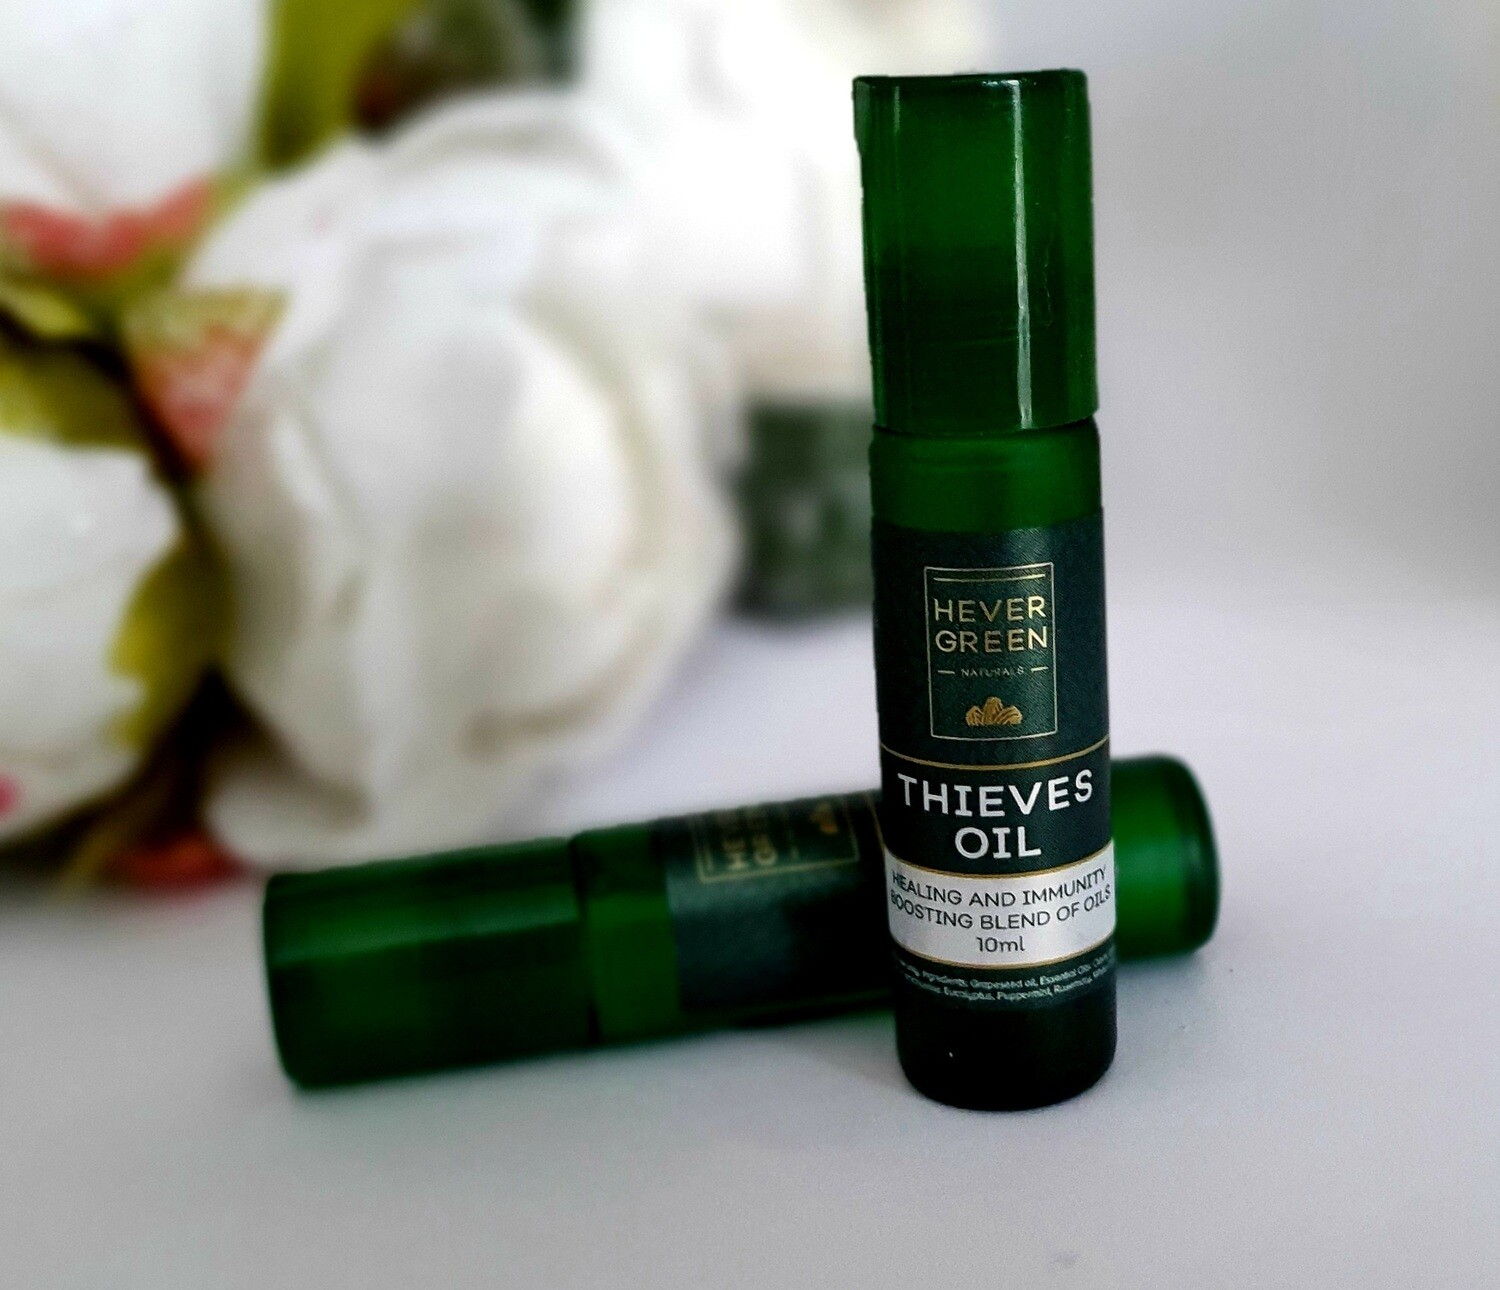 Potent Thieves oil Rollerball 10ml